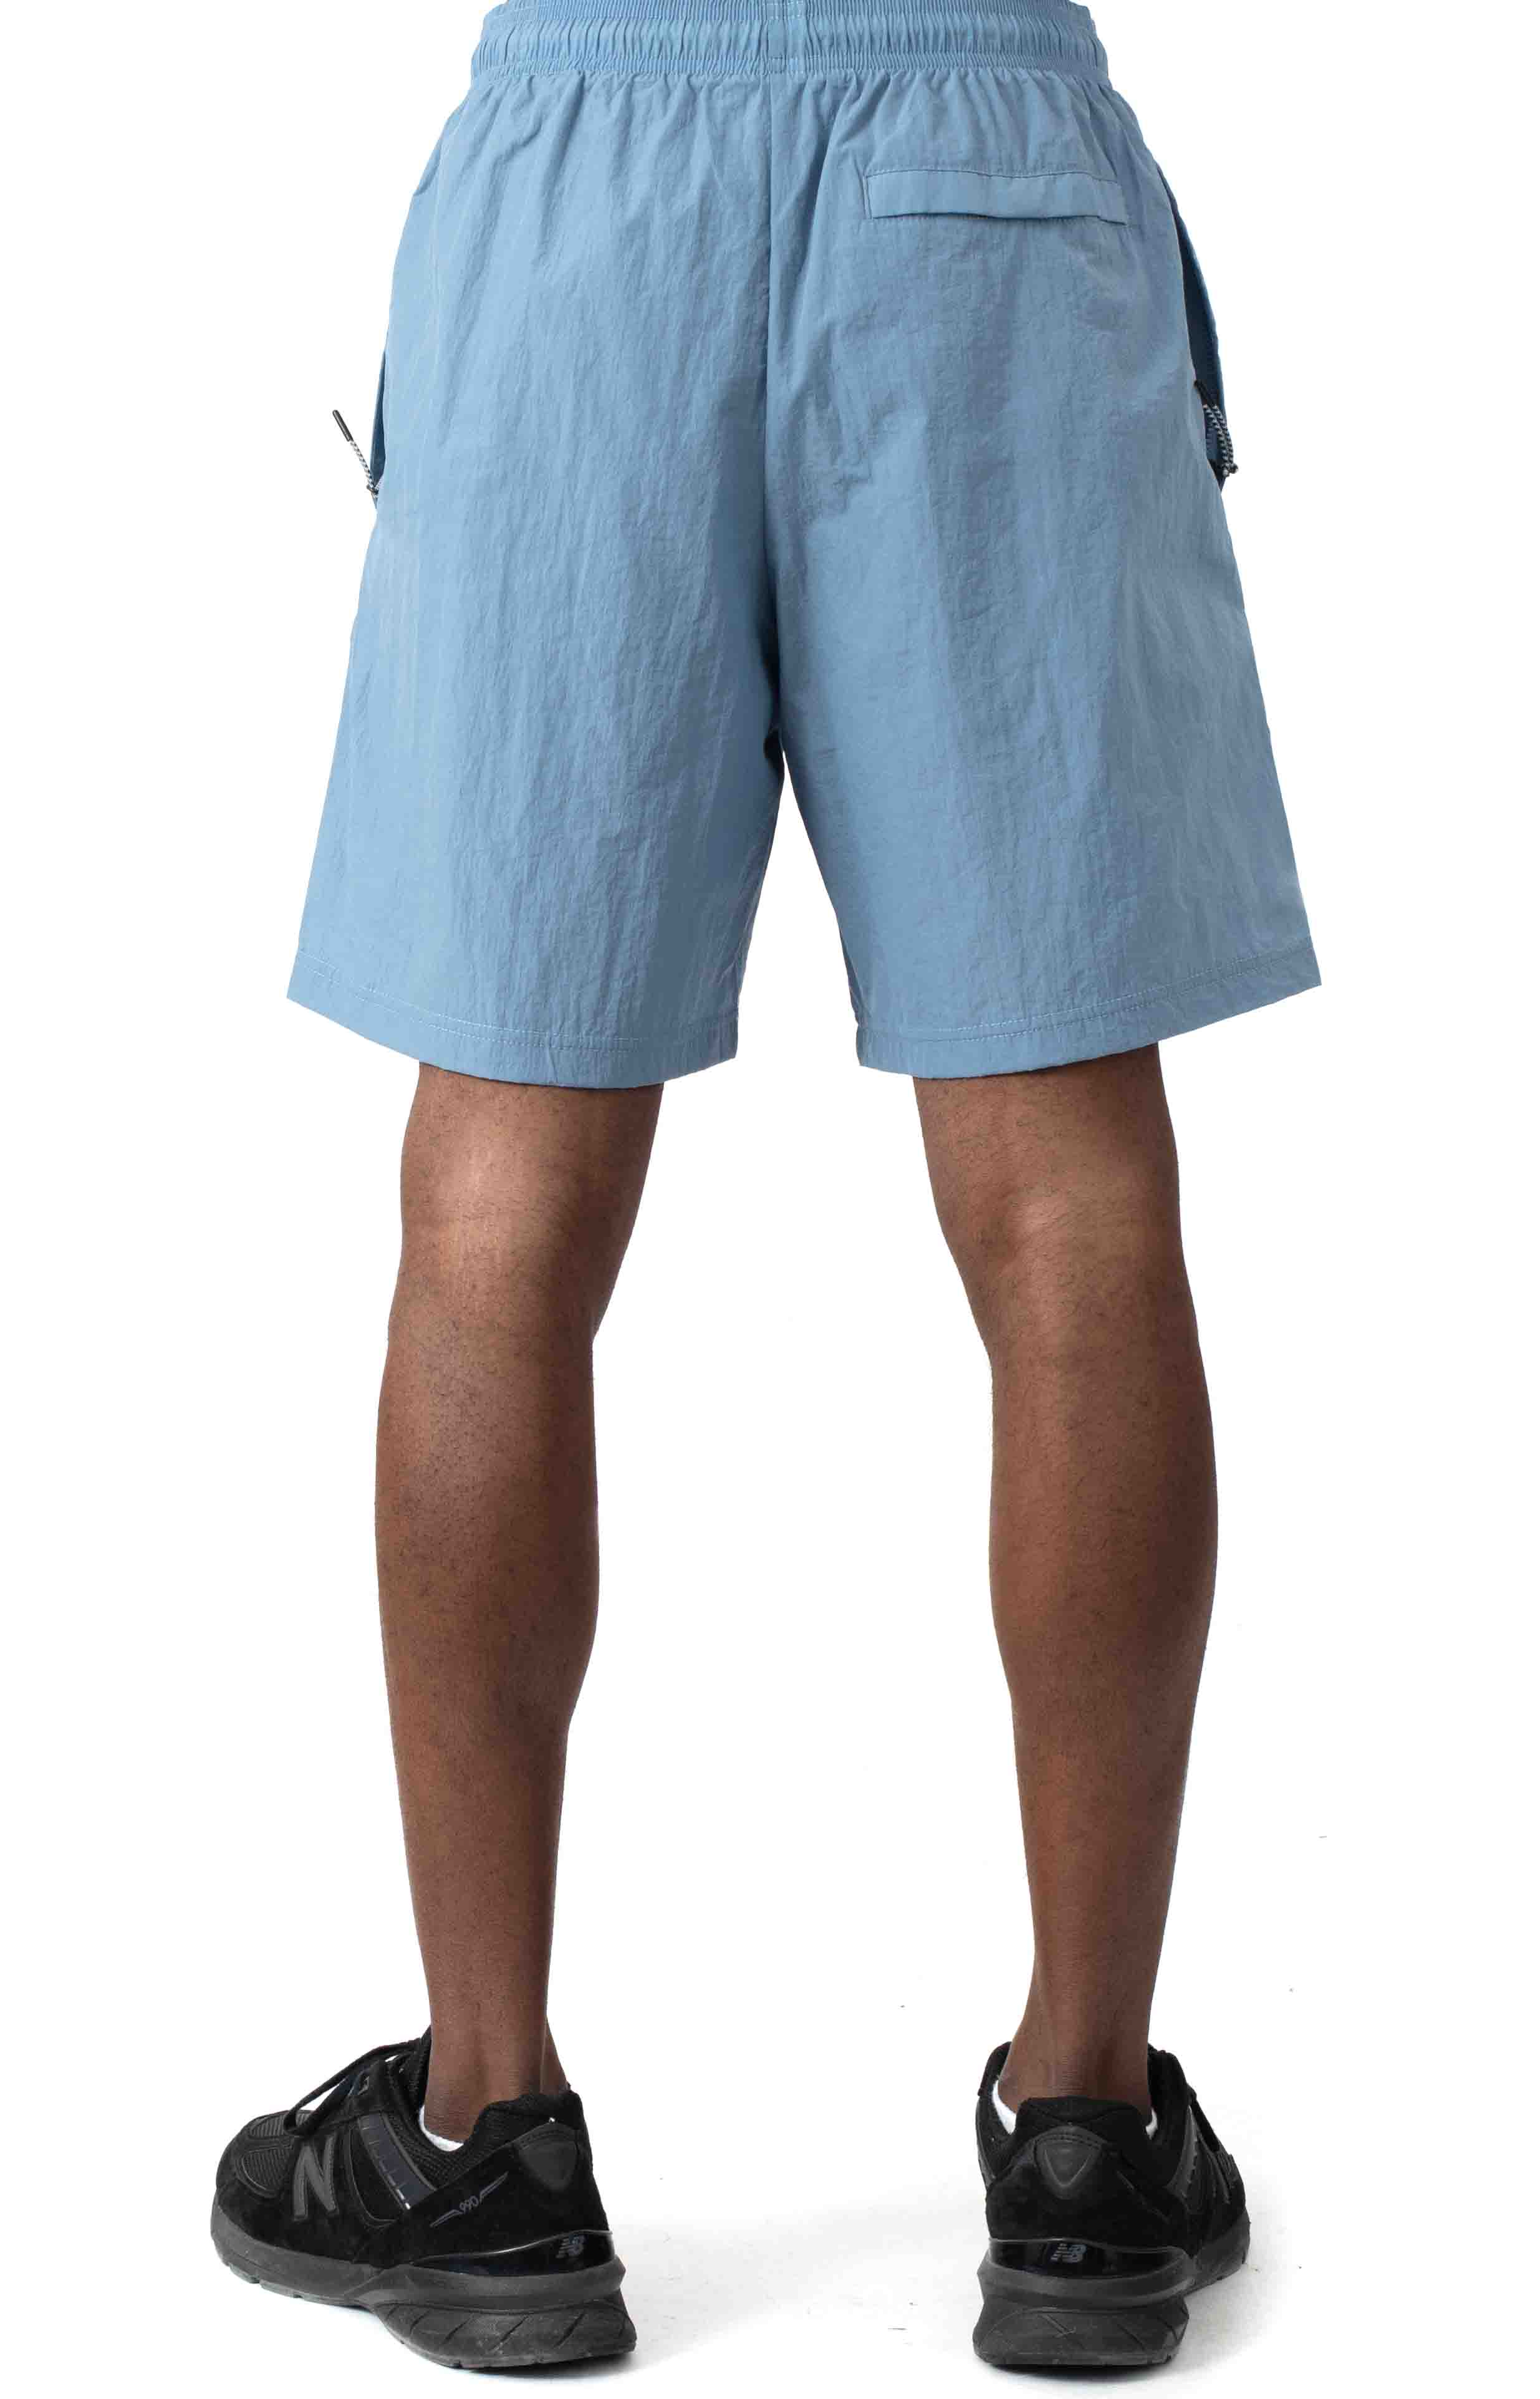 6-Inch Nylon Warm Up Shorts - Wildflower Pale Blue  3